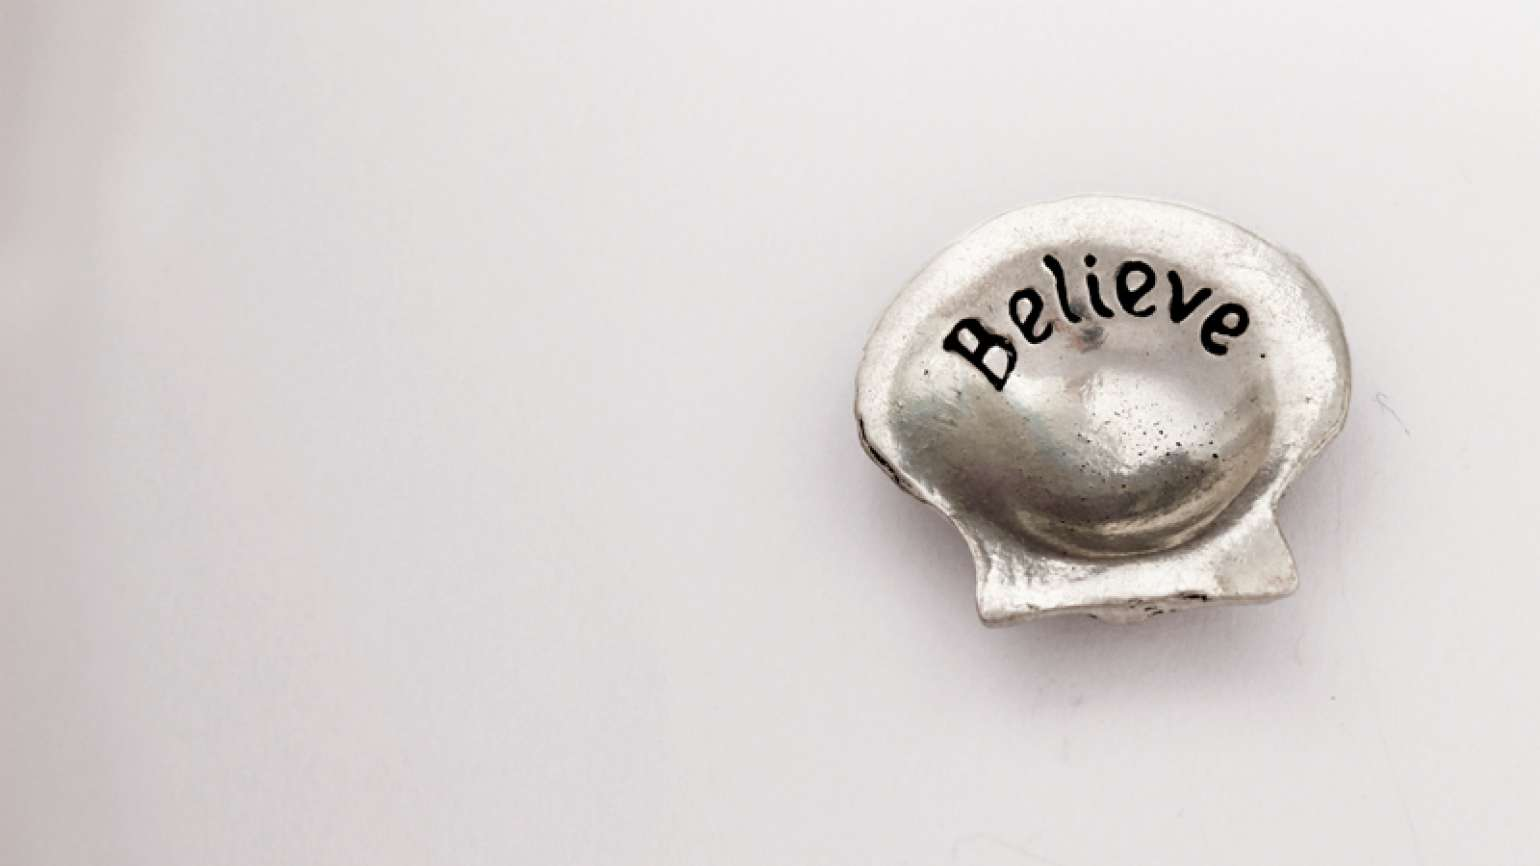 The word 'believe' inscribed on a seashell